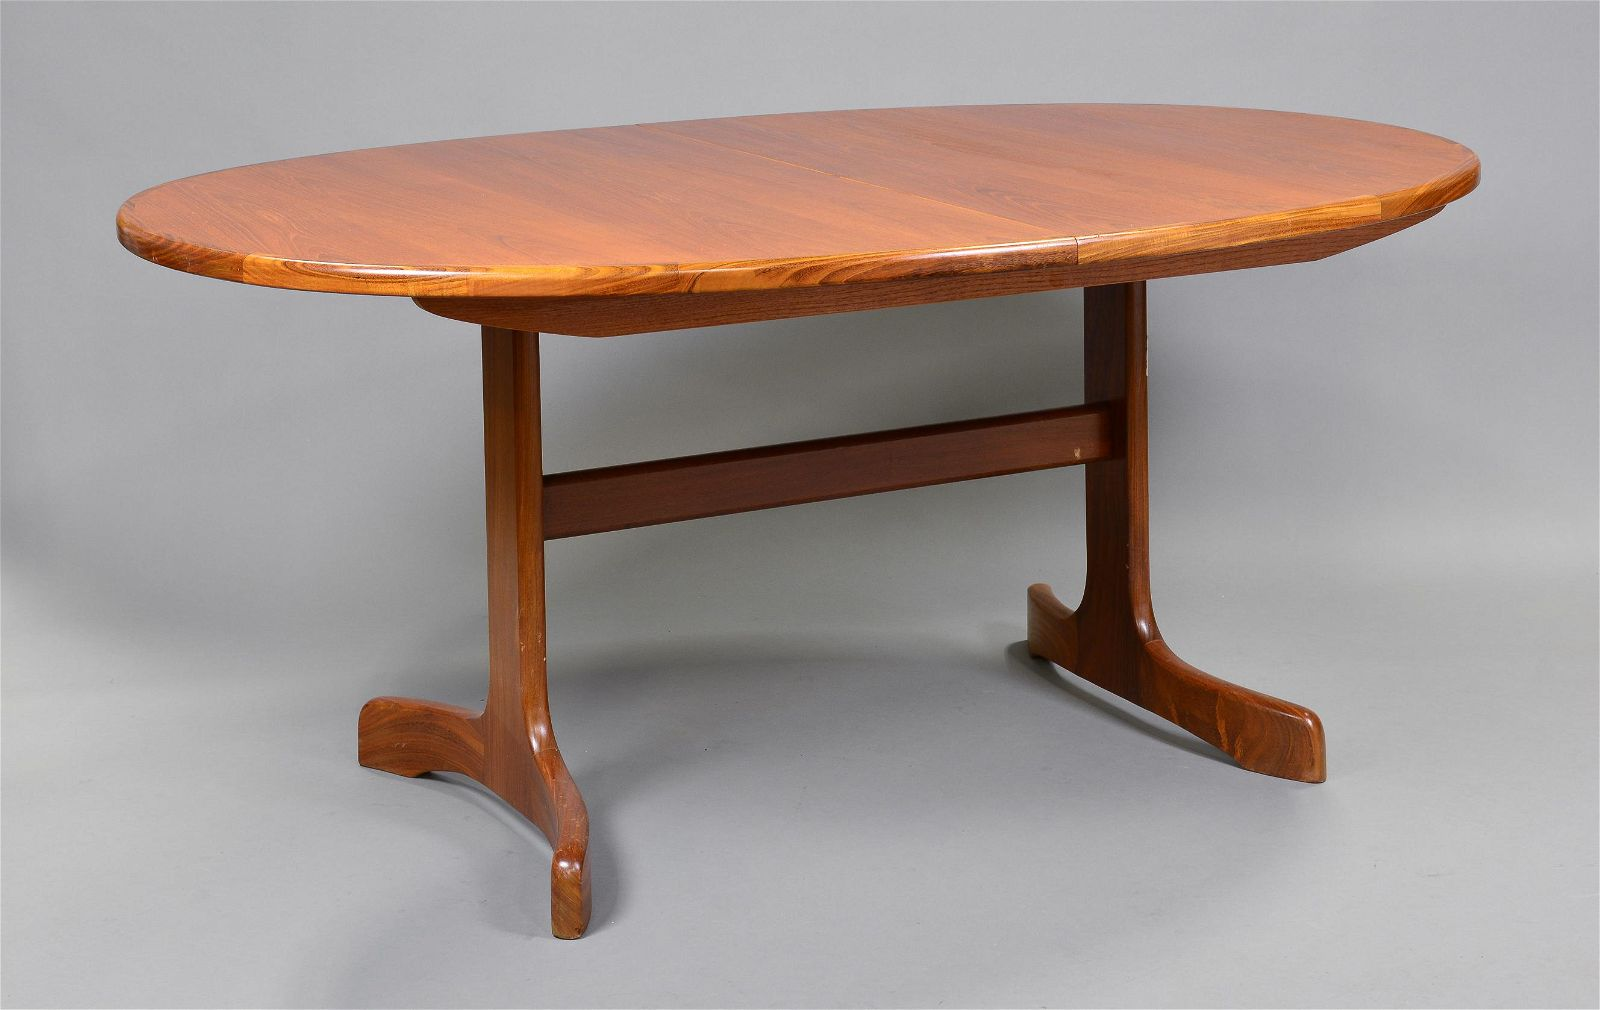 Oval Mid Century Teak Dining Table By G-Plan